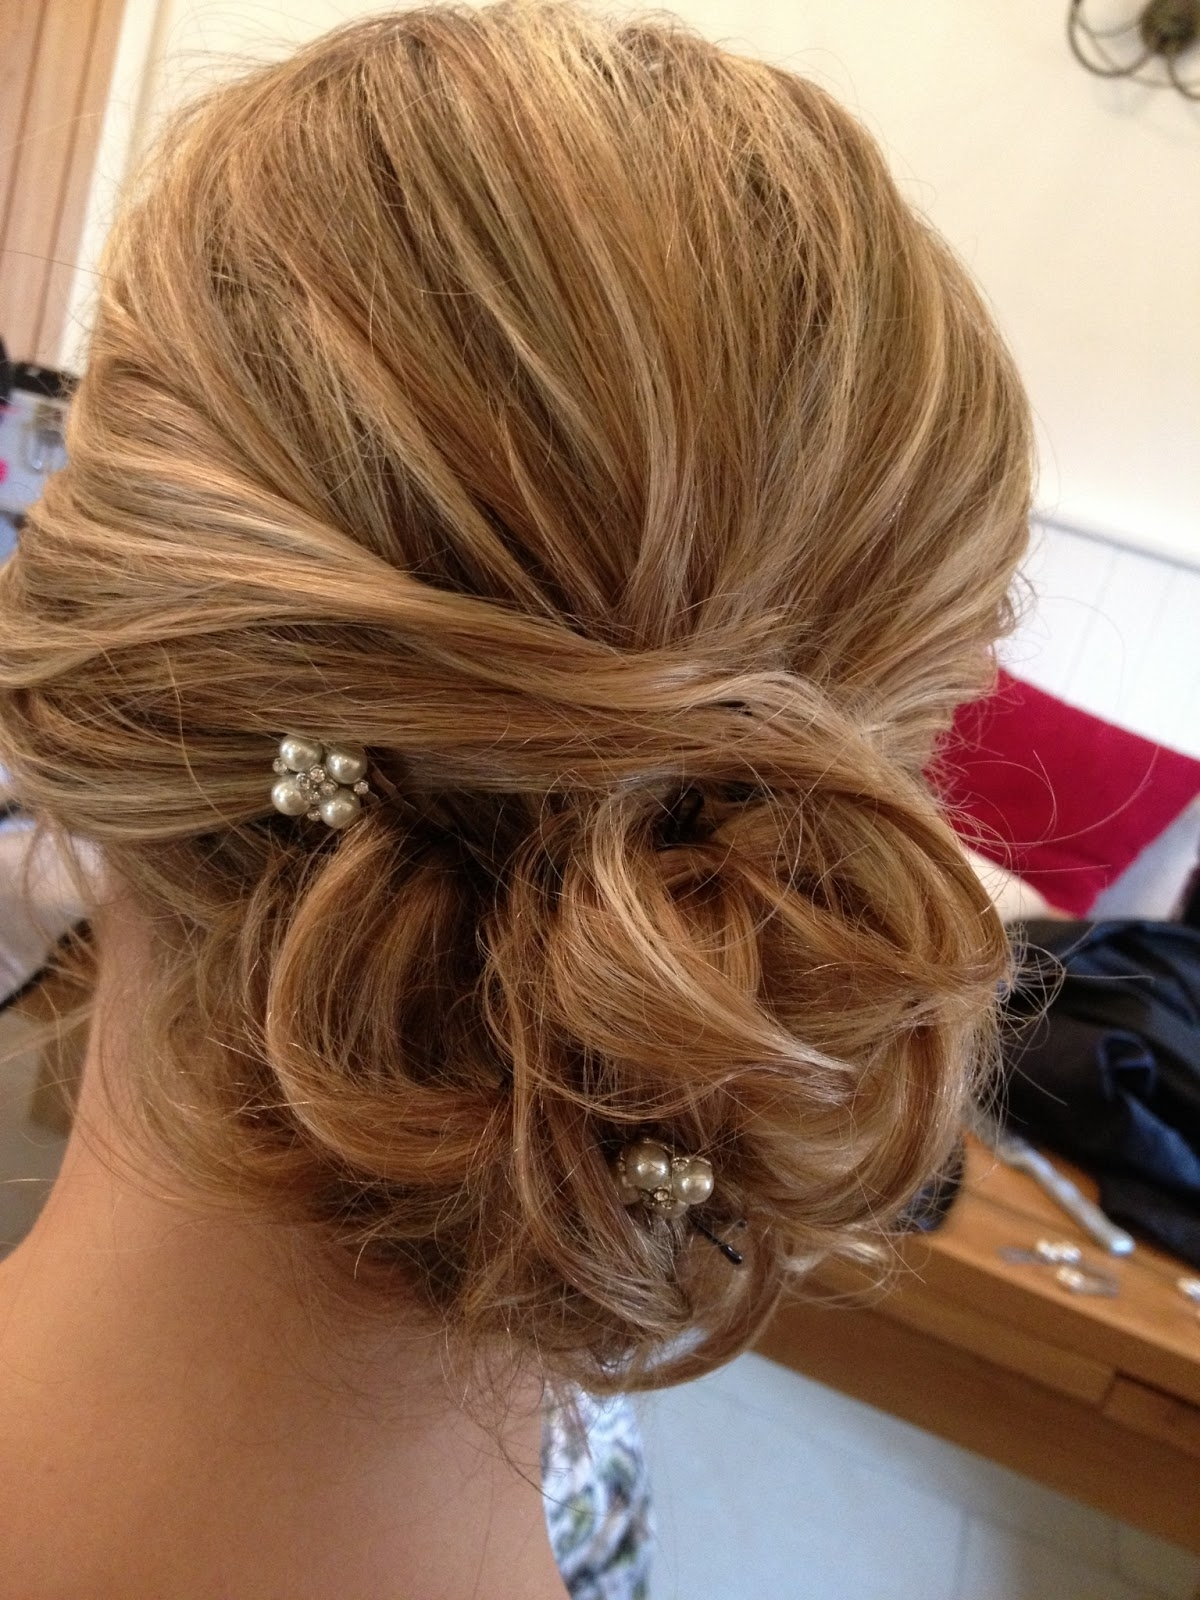 Extraordinary Wedding Hairstyles Low Side Bun About With Over 20 Regarding Most Up To Date Side Bun Wedding Hairstyles (Gallery 10 of 15)